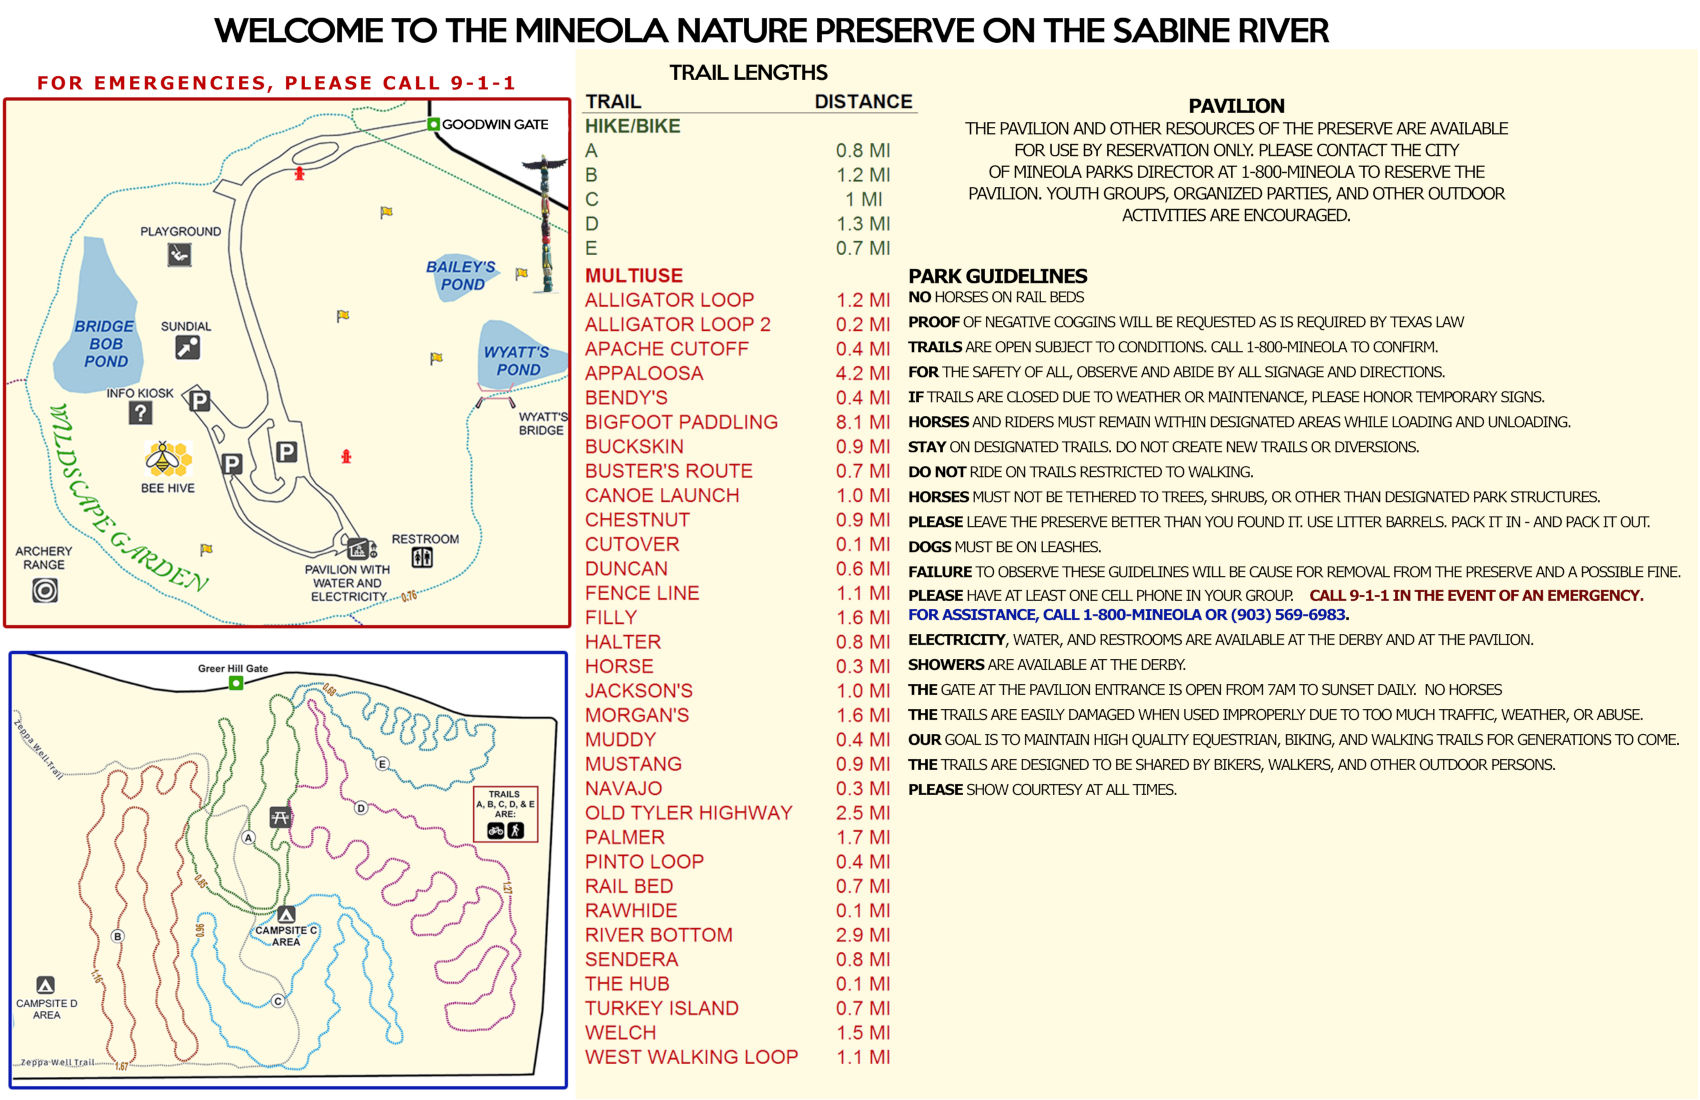 Mineola Nature Preserve Park Map 02282018 etcog page 2